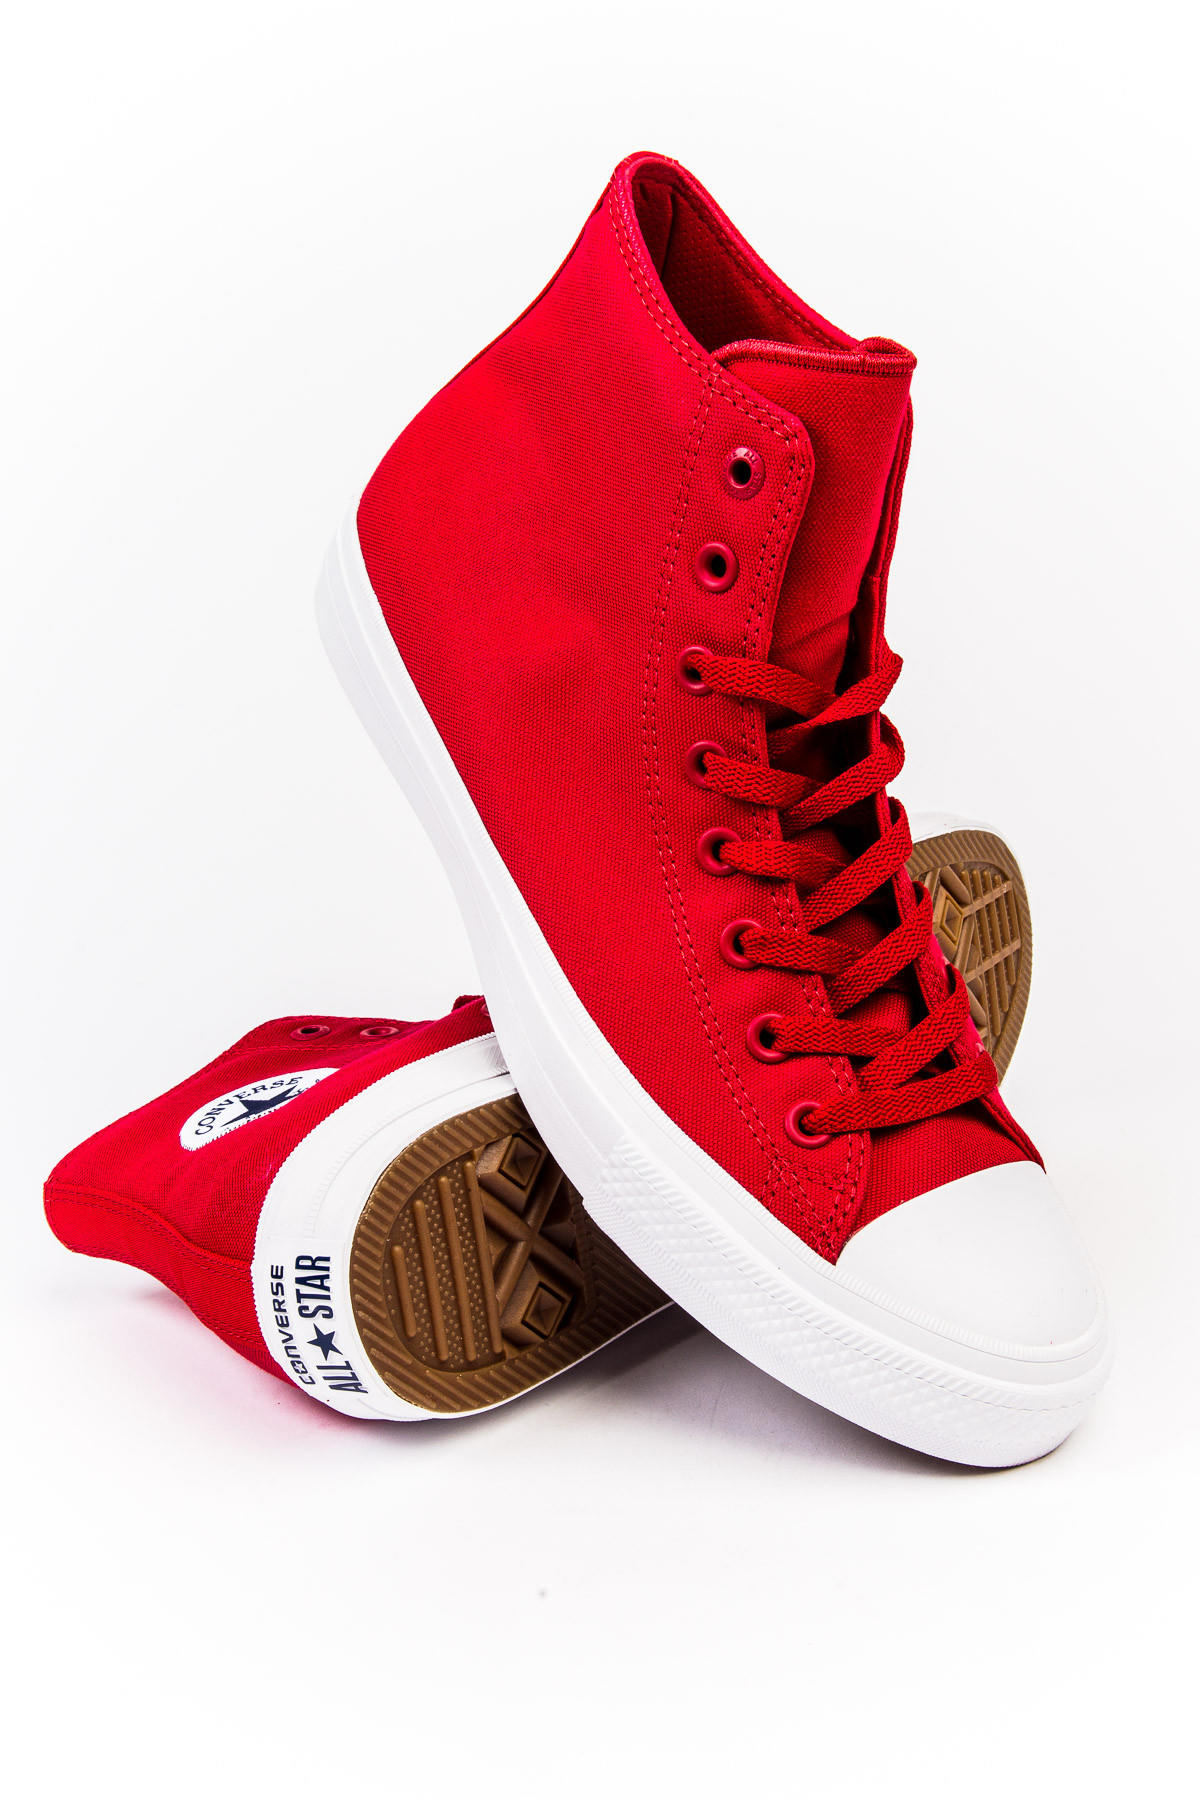 converse all star 2 rosse